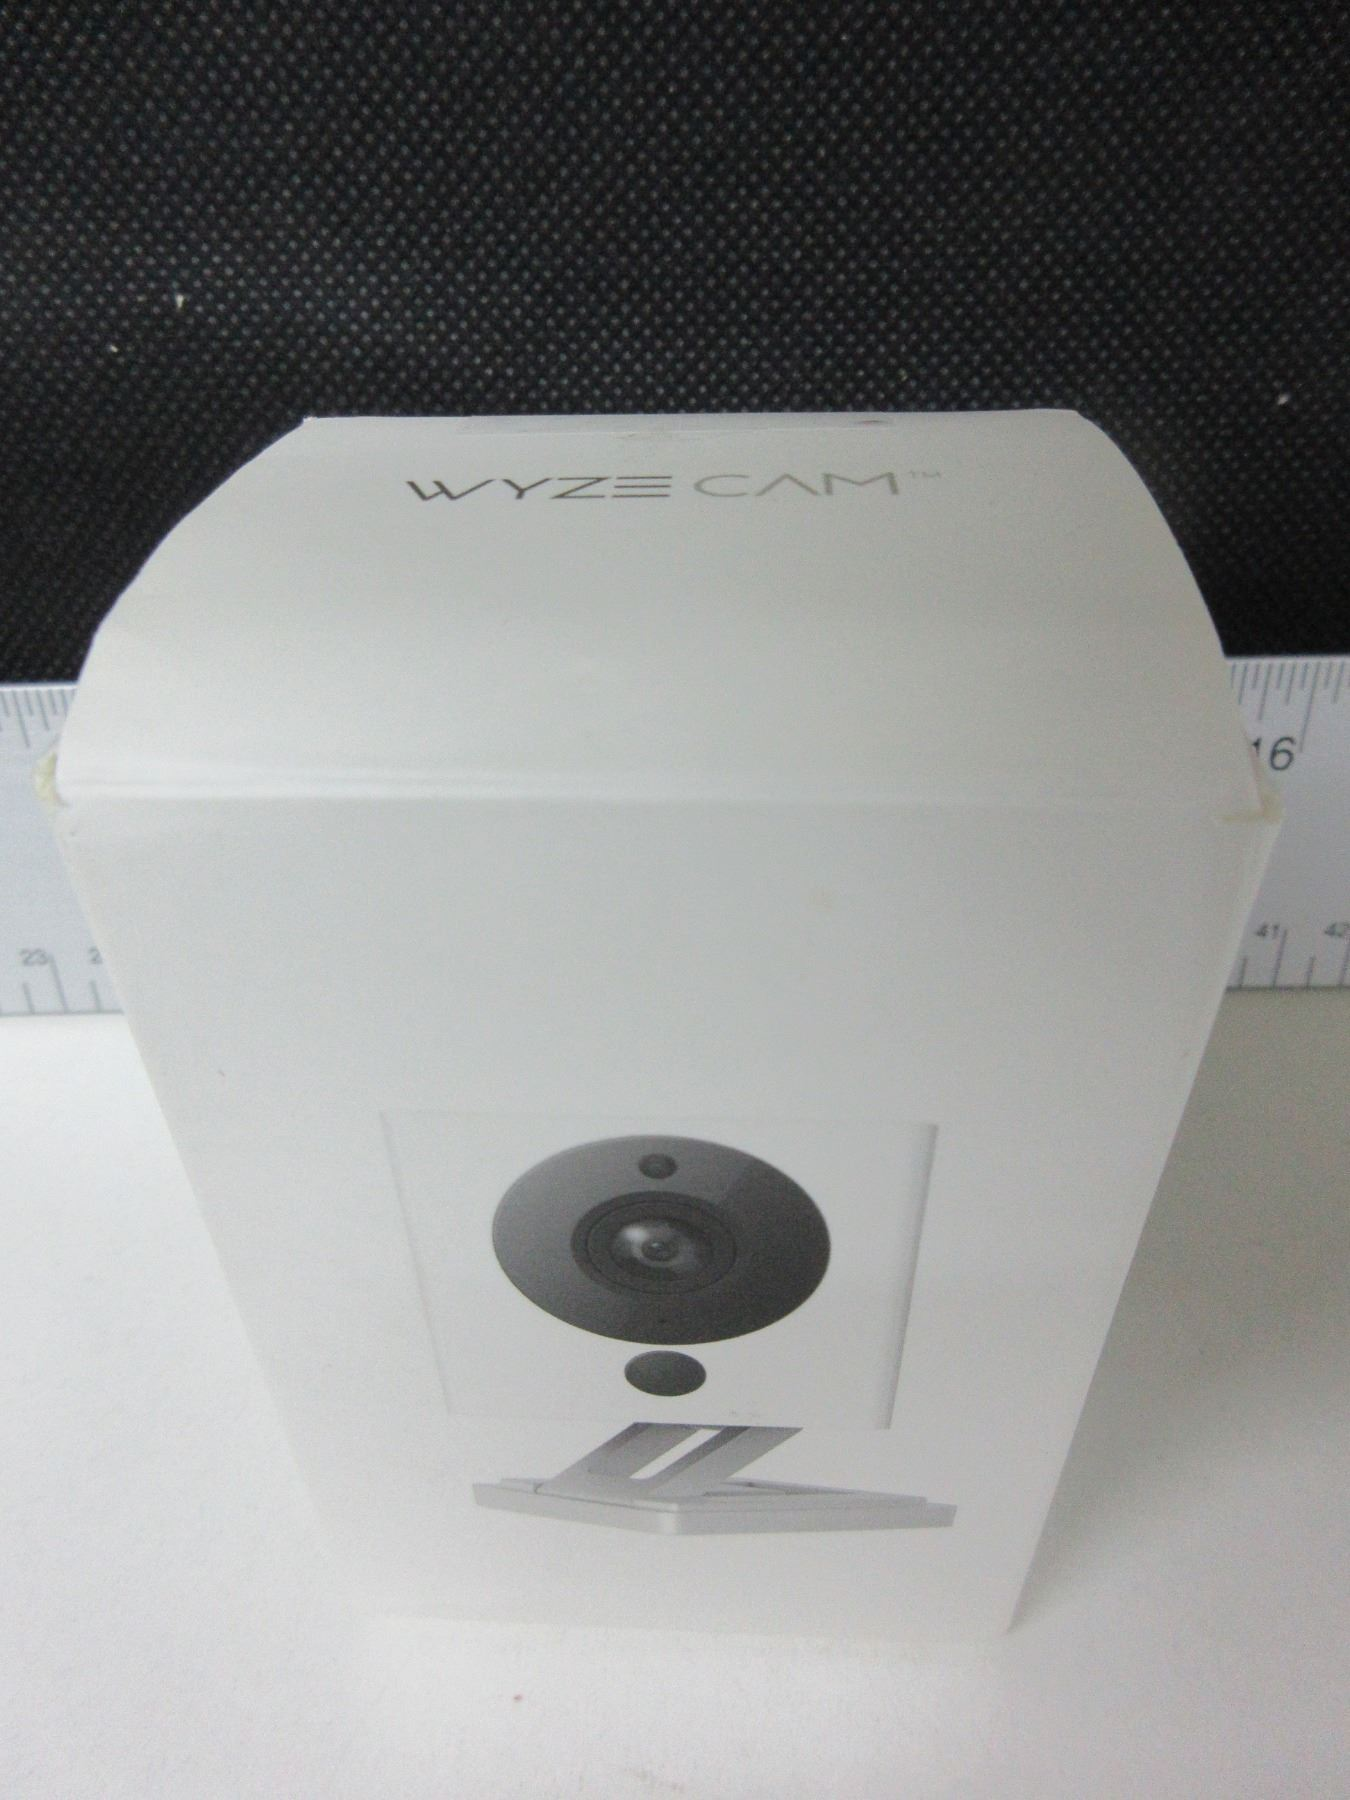 New WYZE CAM smart home Camera with night vision-8x